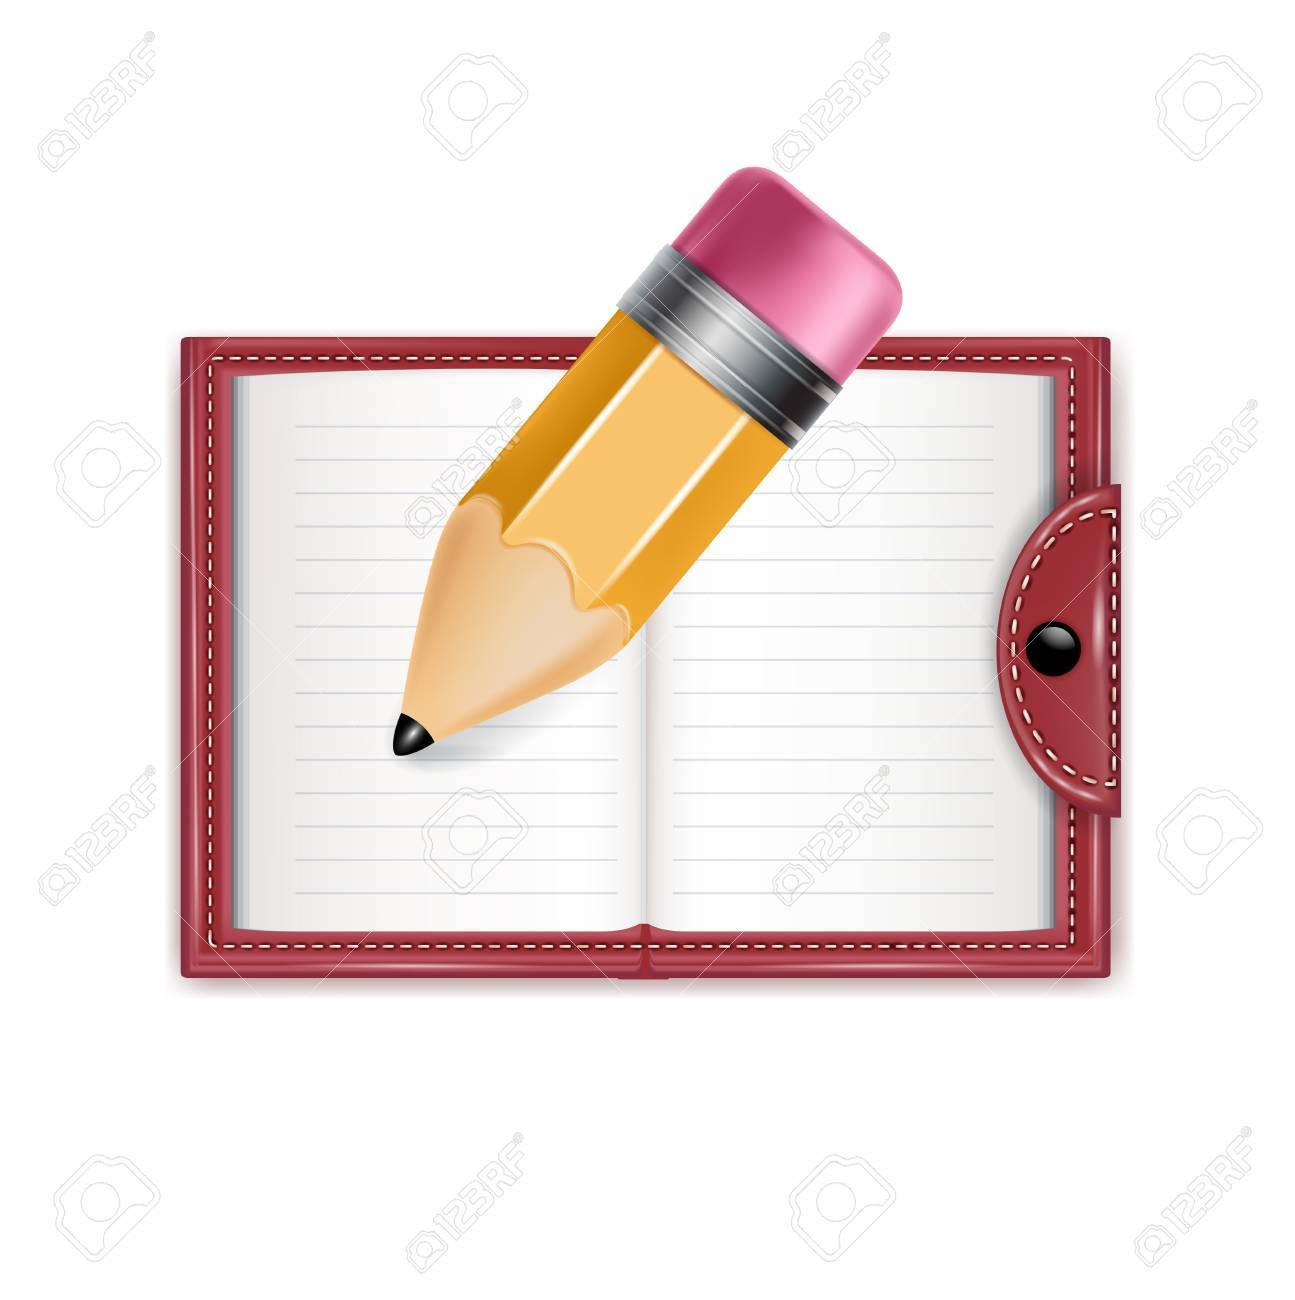 agenda and pencil isolated on white background Stock Vector - 22590305